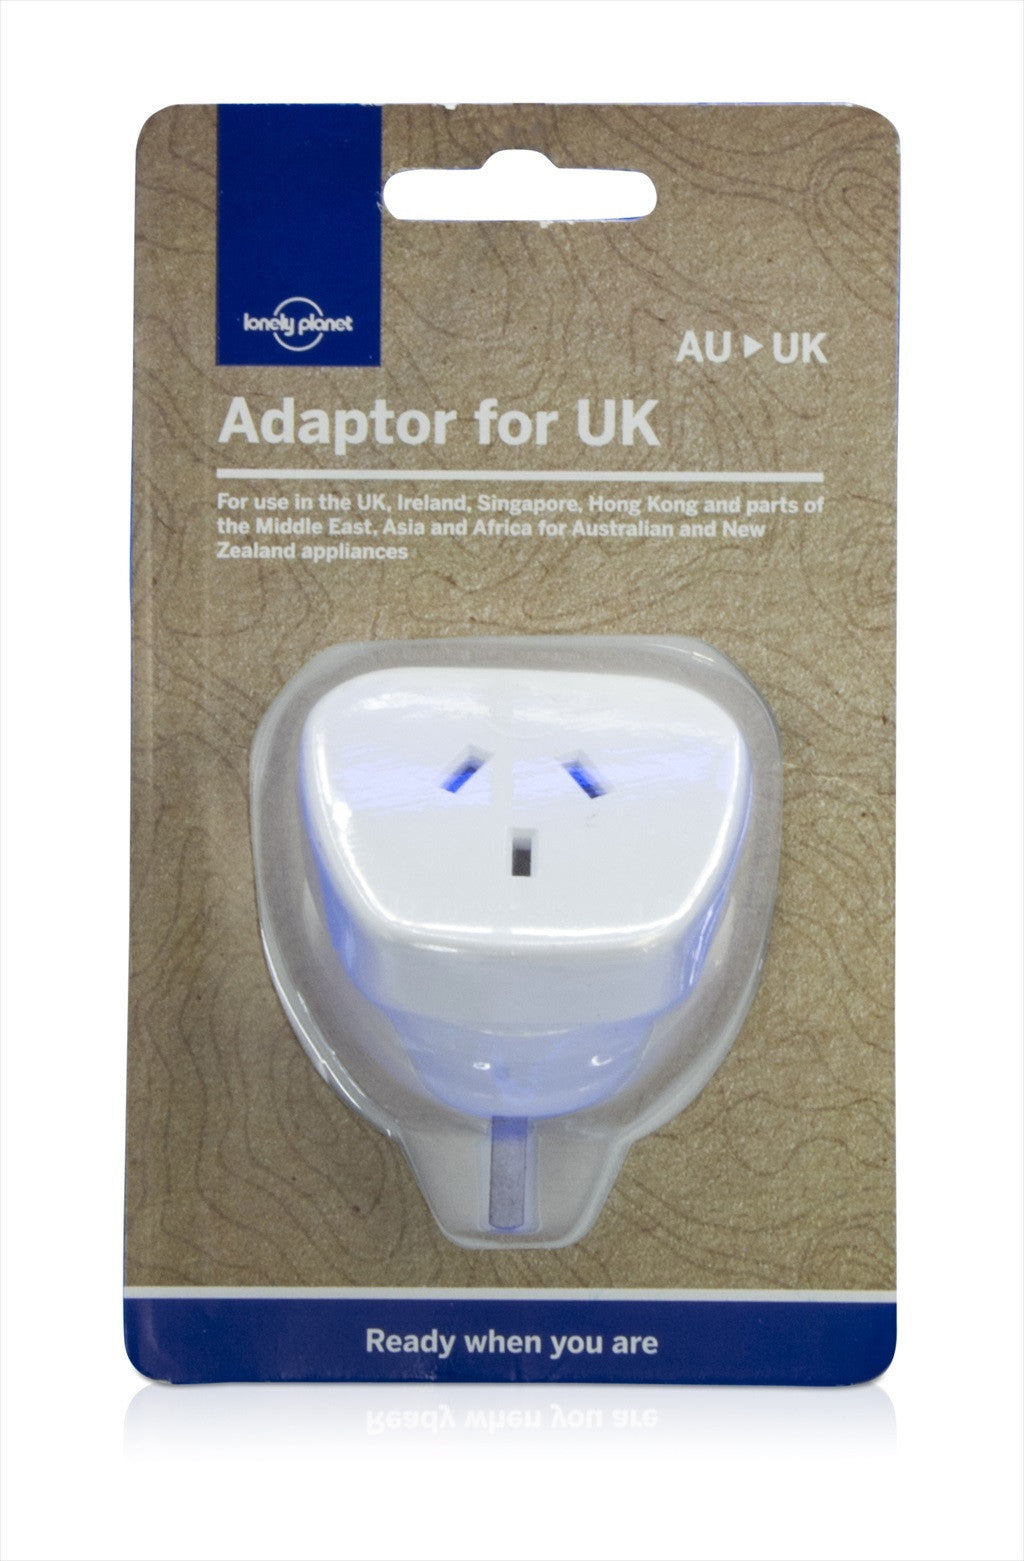 POWER ADAPTOR FOR UK - Charles Darwin University Bookshop